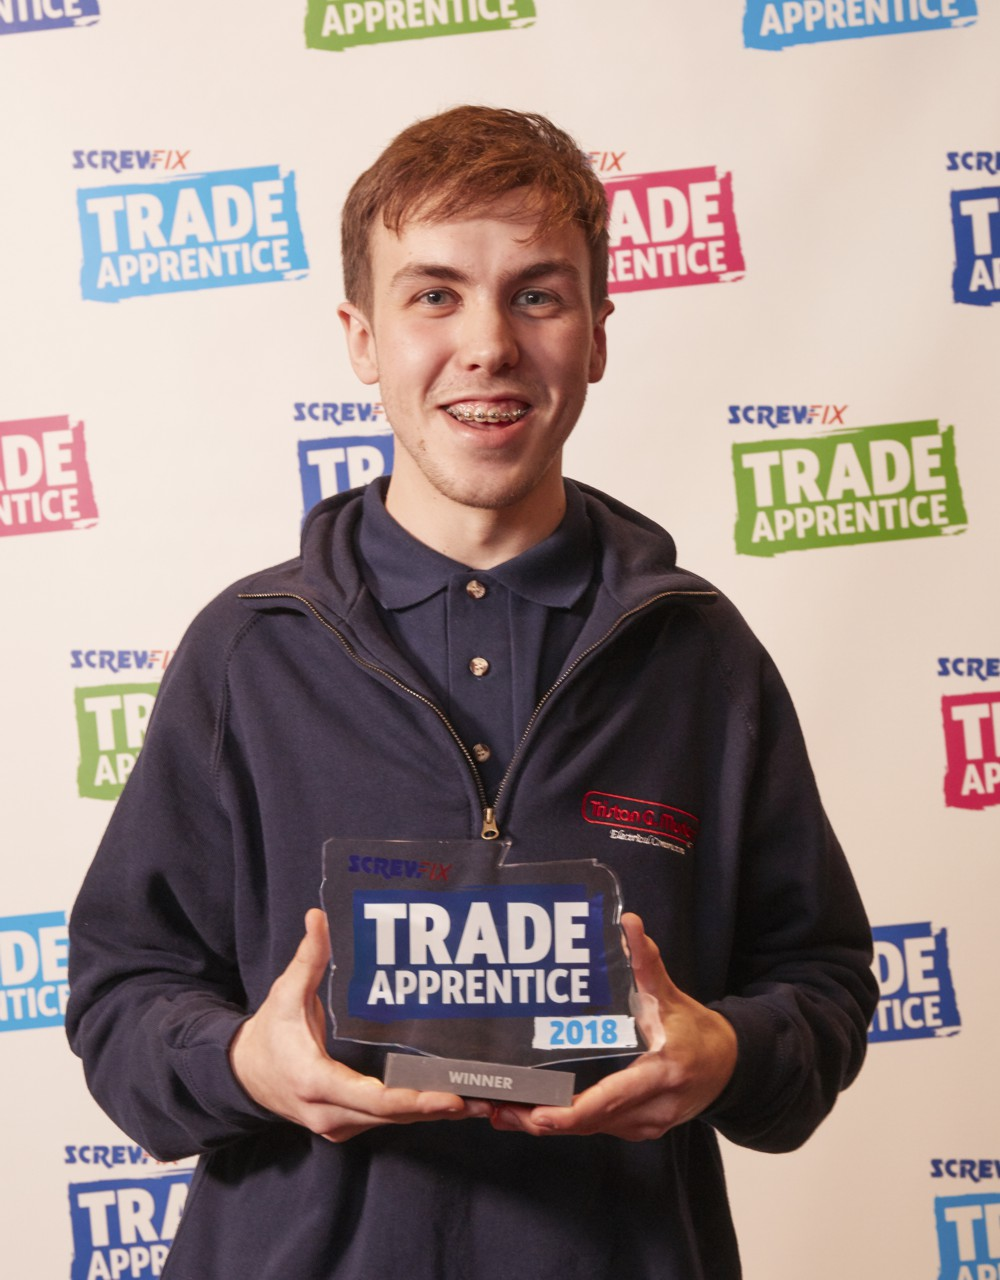 Jack Martin Screwfix Trade Apprentice 2018